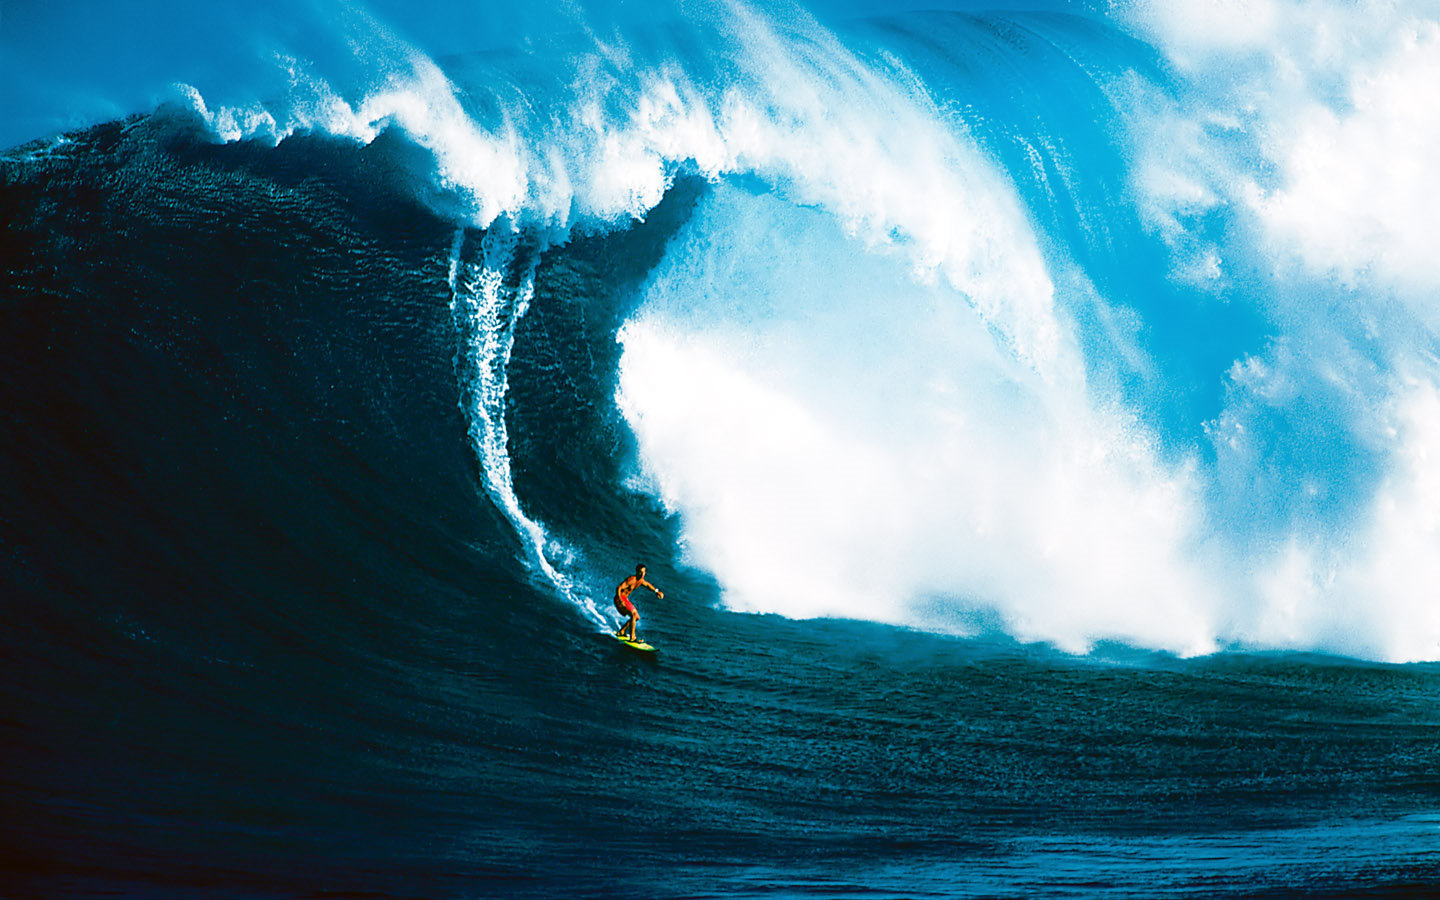 Surfing Wave Wallpapers Surf Wallpapers 1440x900